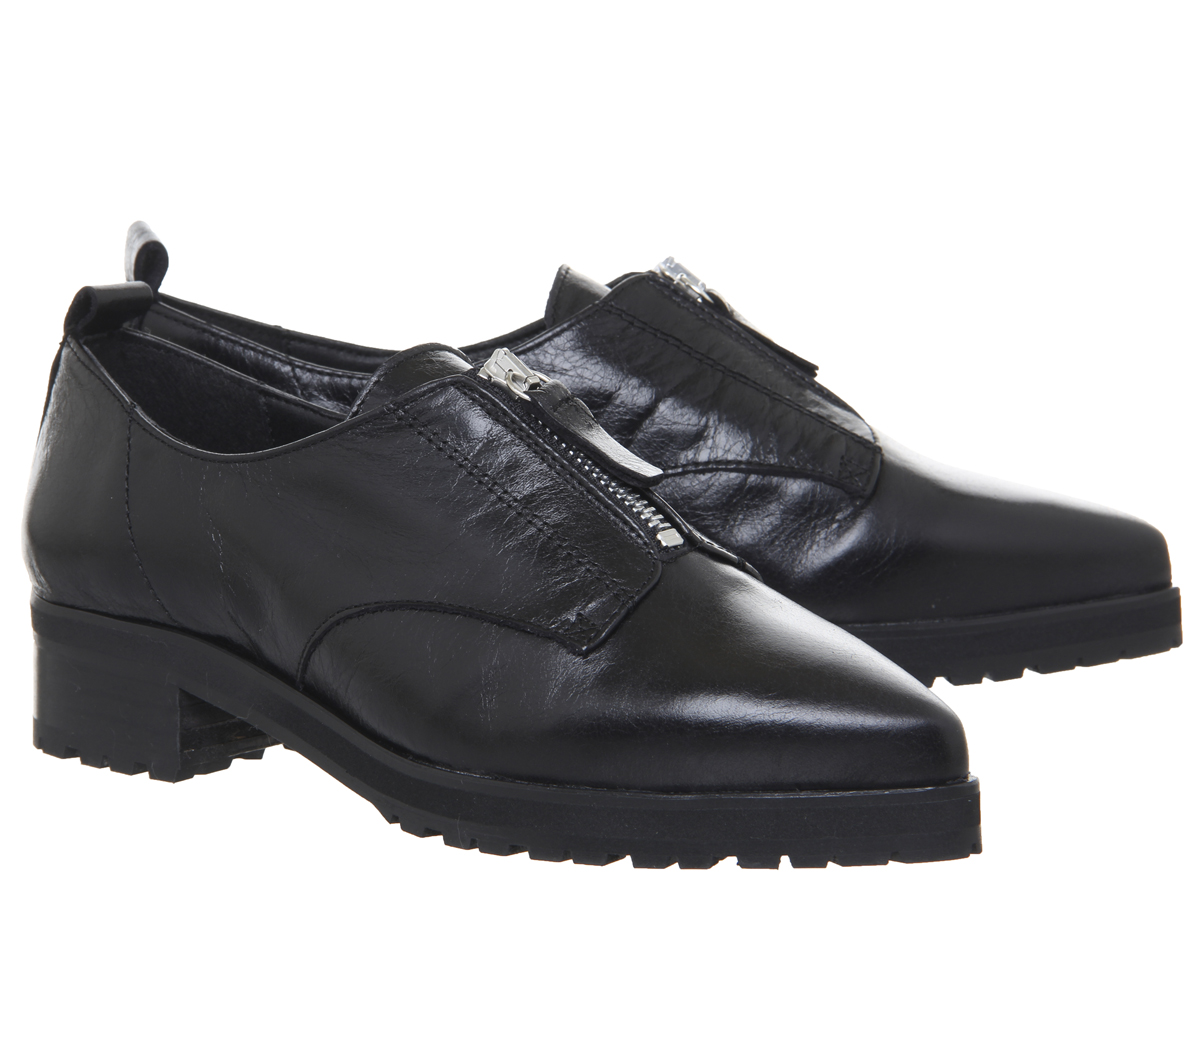 Damenschuhe Office Foster LEATHER Zip Front Cleated Schuhes BLACK LEATHER Foster Flats 5263e9